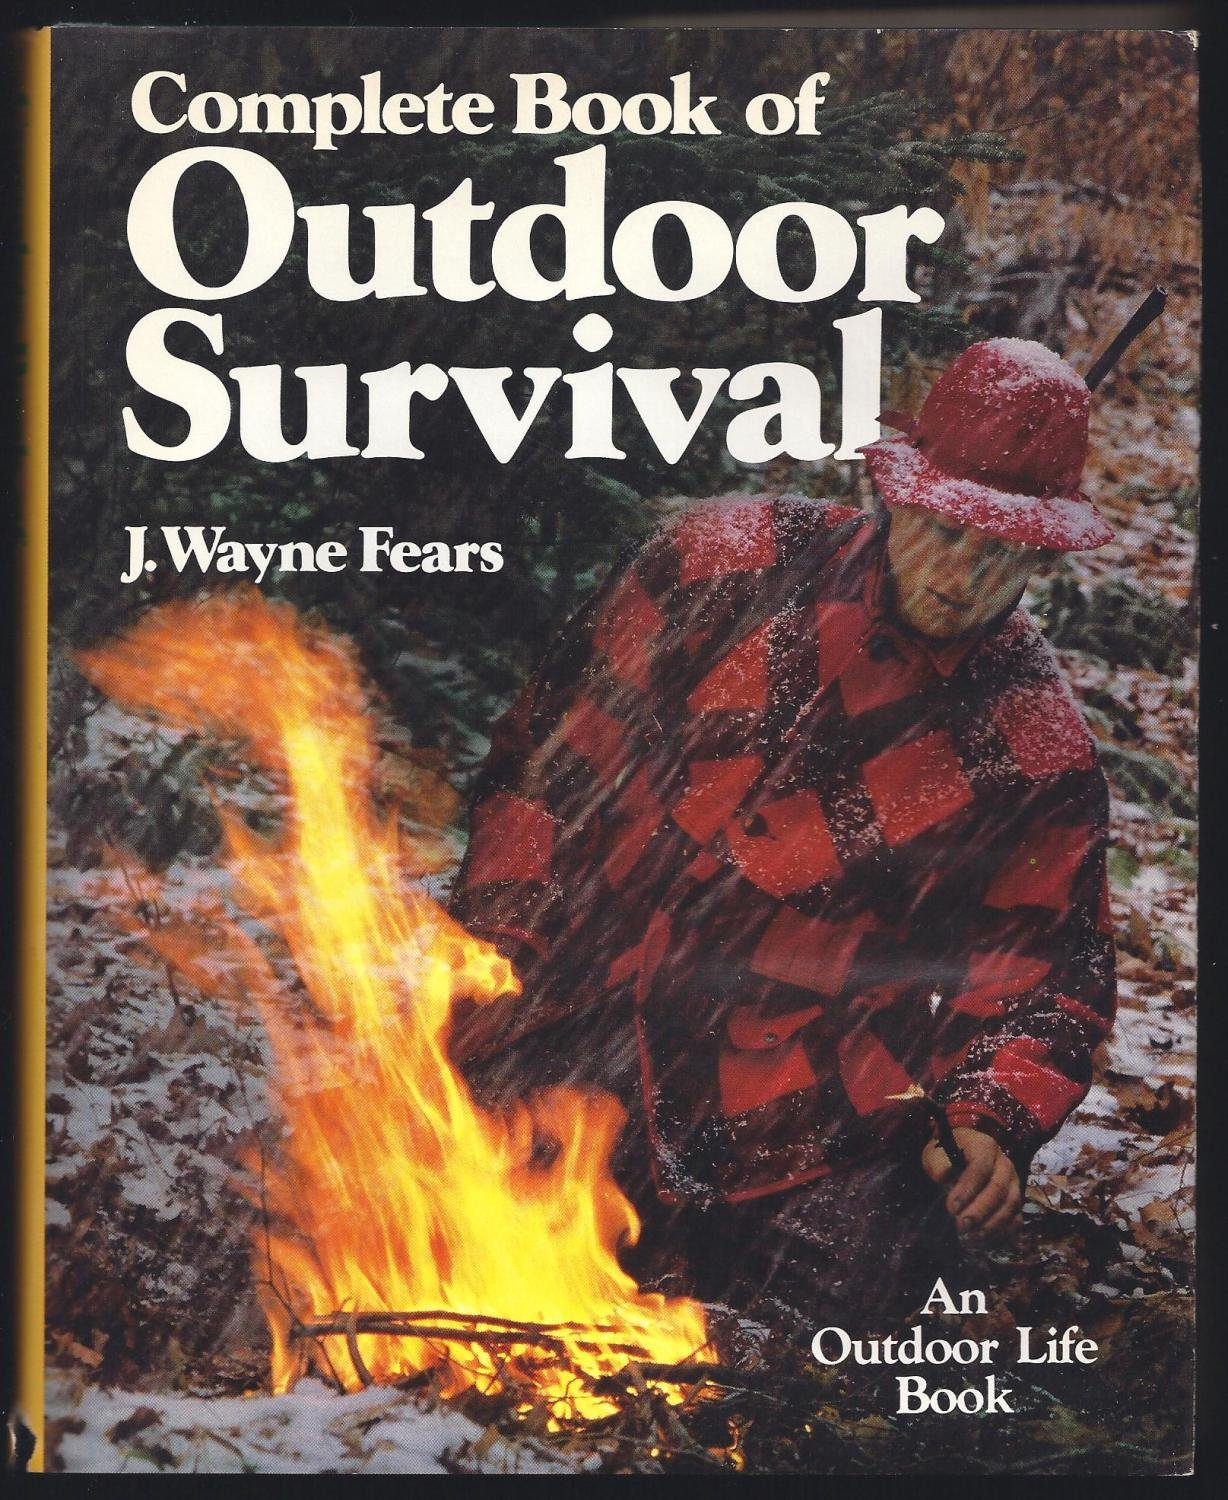 Complete Book of Outdoor Survival by Brand: Outdoor Life